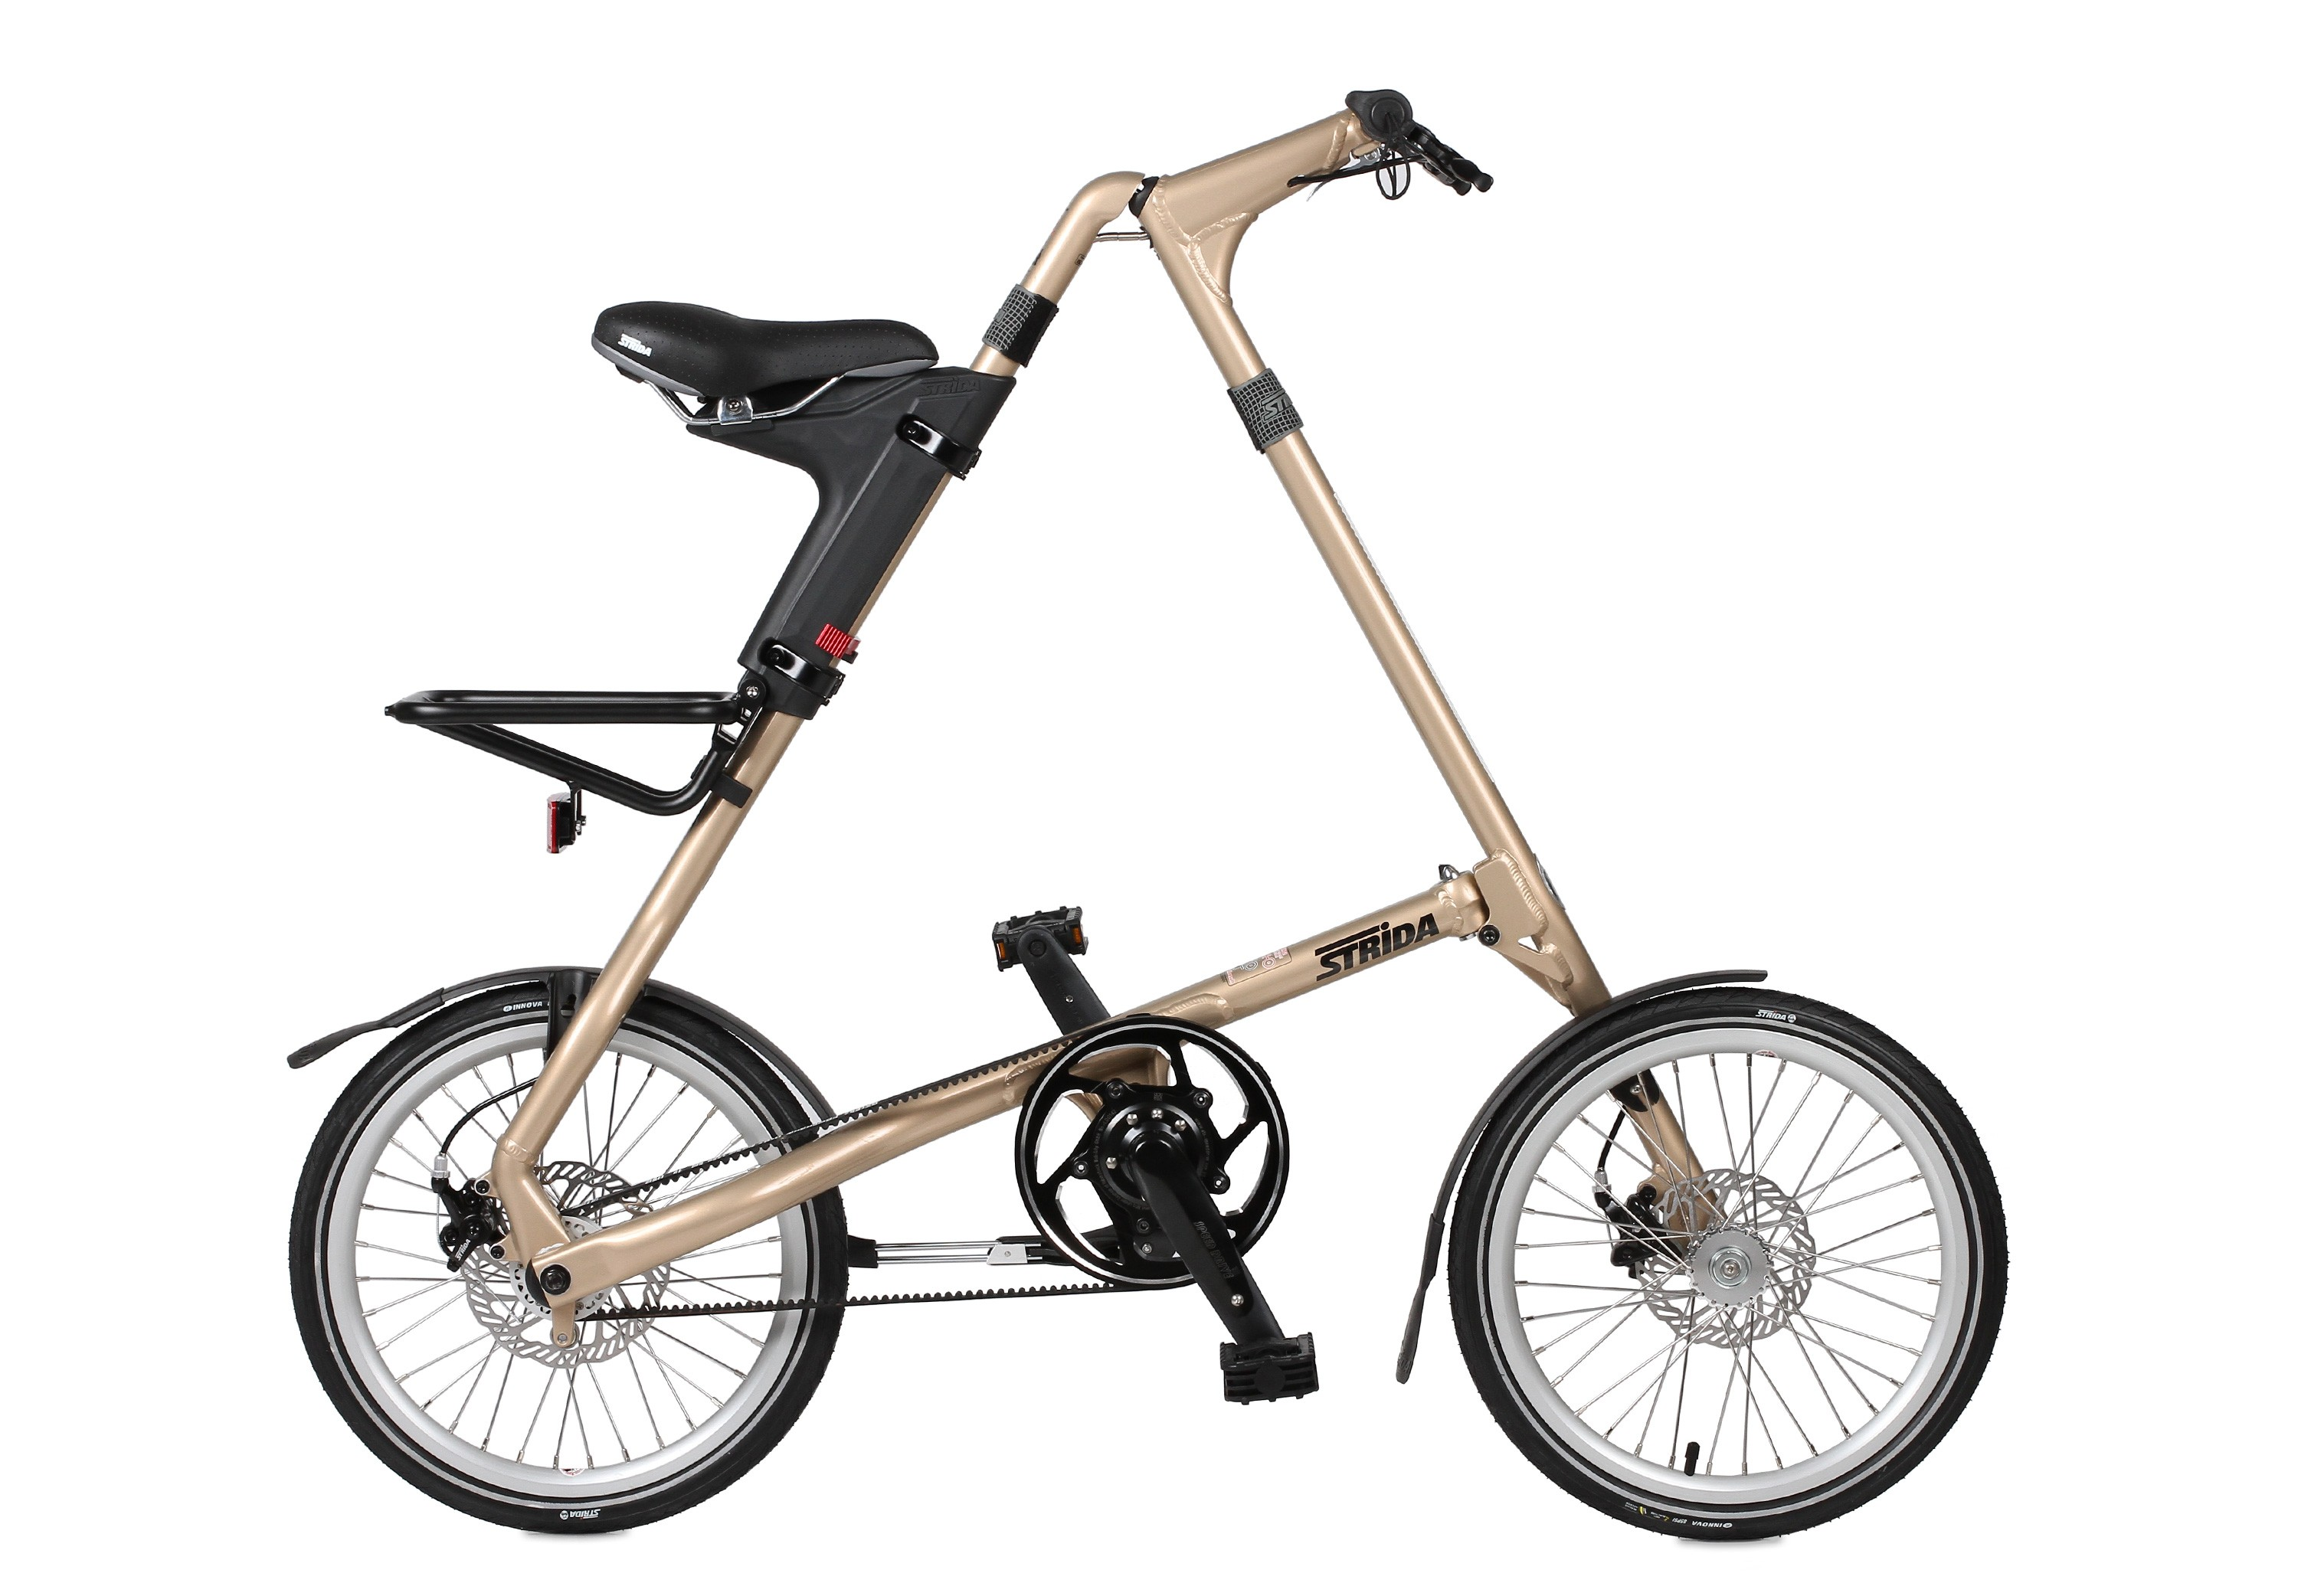 Дорожный велосипед Strida SD (2017)